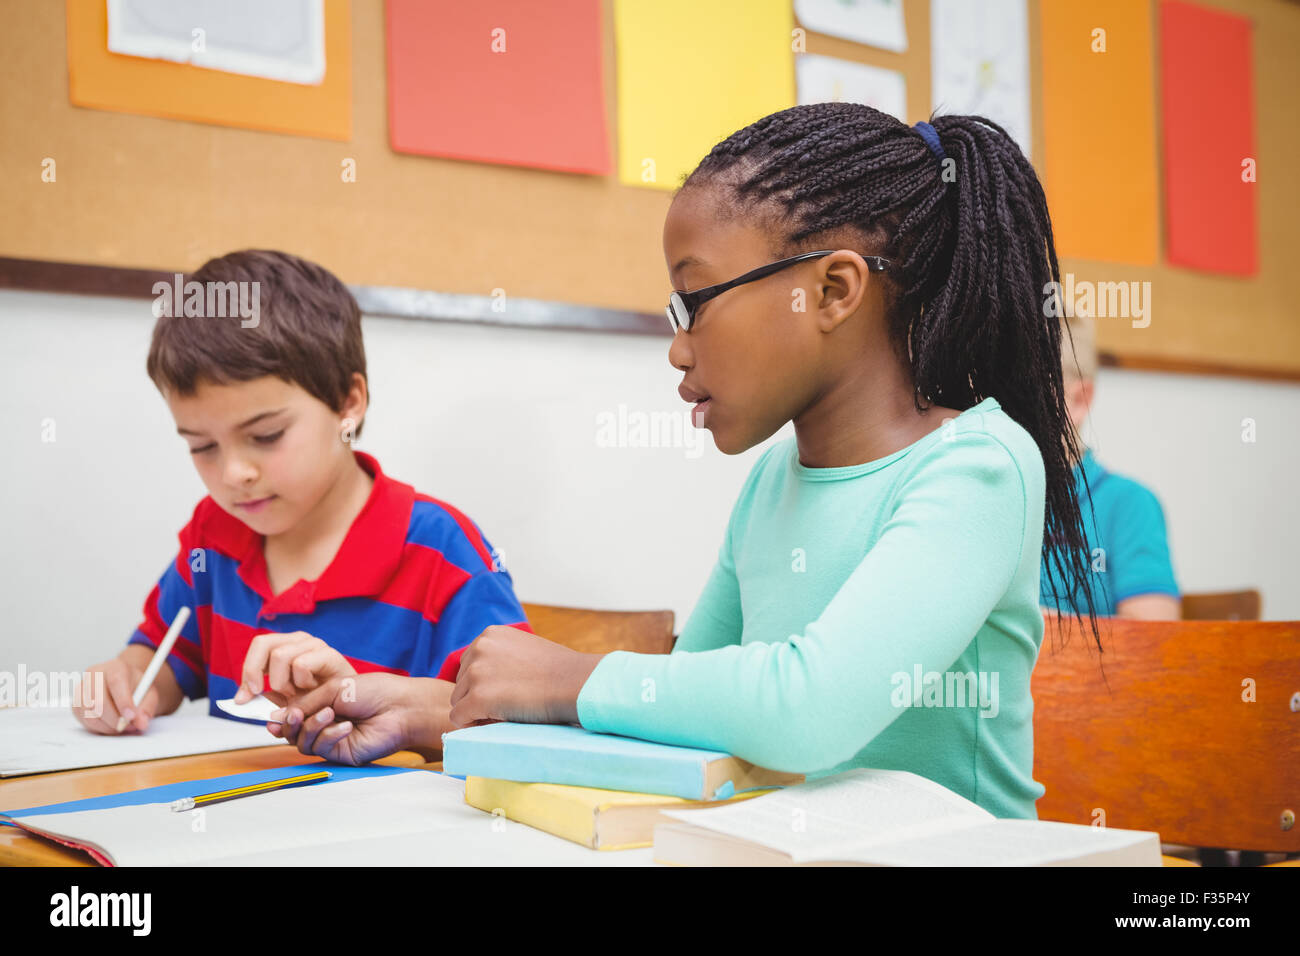 Student helping fellow student in class - Stock Image